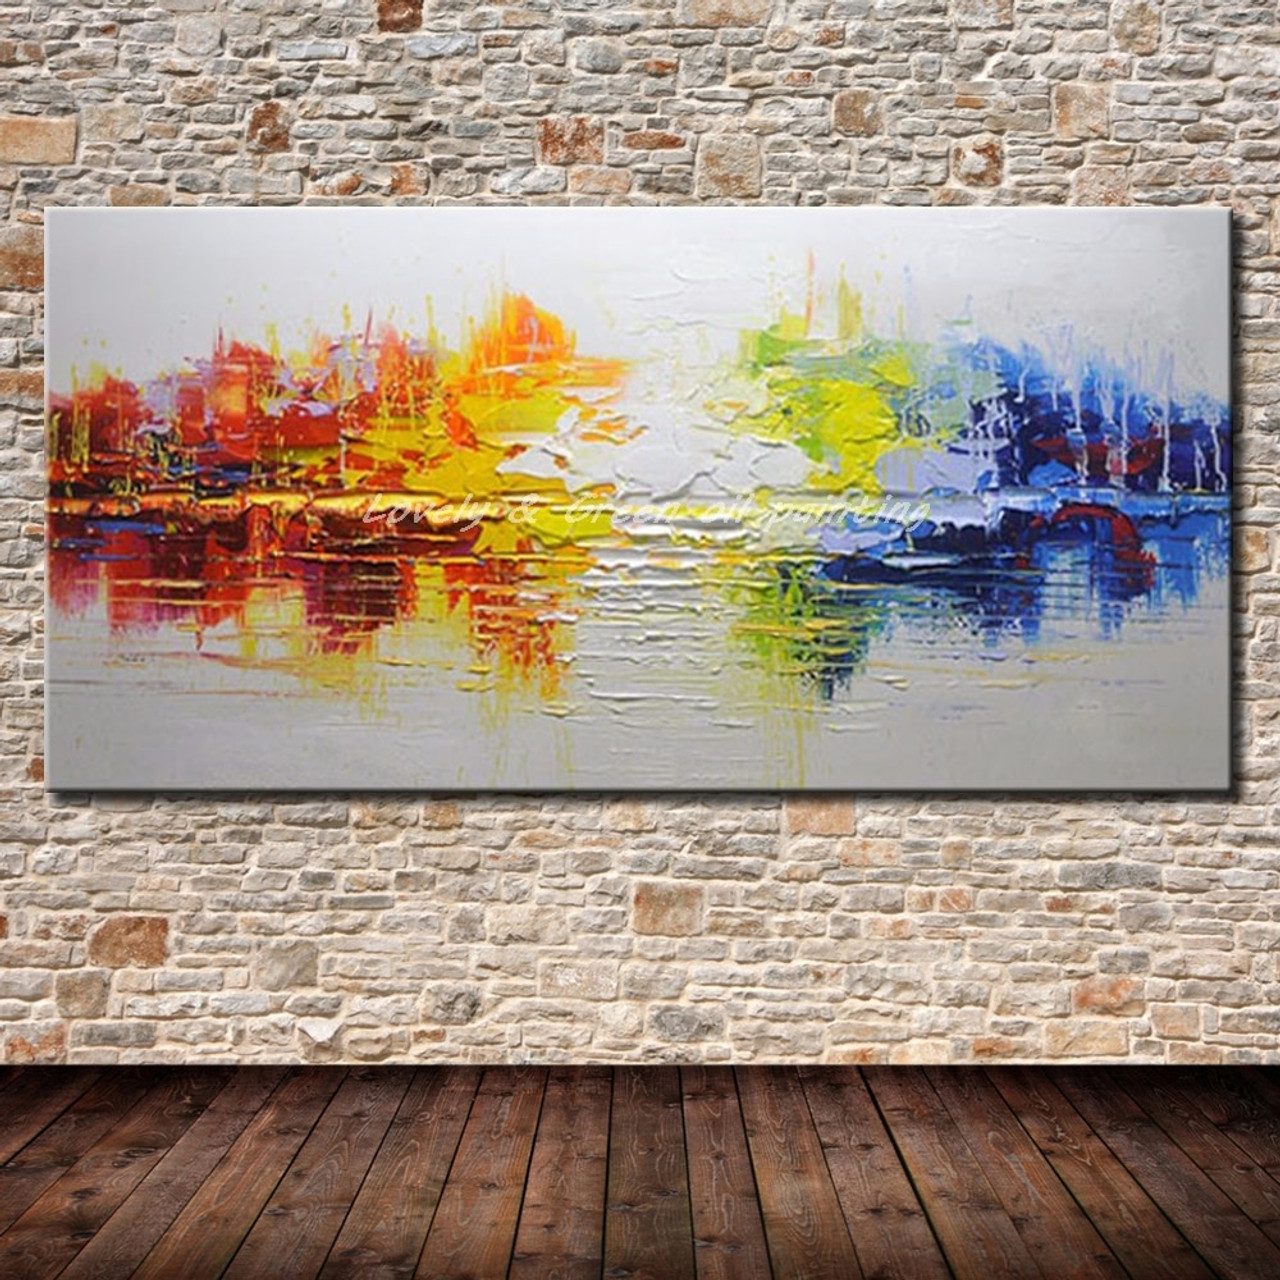 Hand painted canvas oil paintings modern abstract oil painting on canvas wall art pictures for living room hotal decor best gift